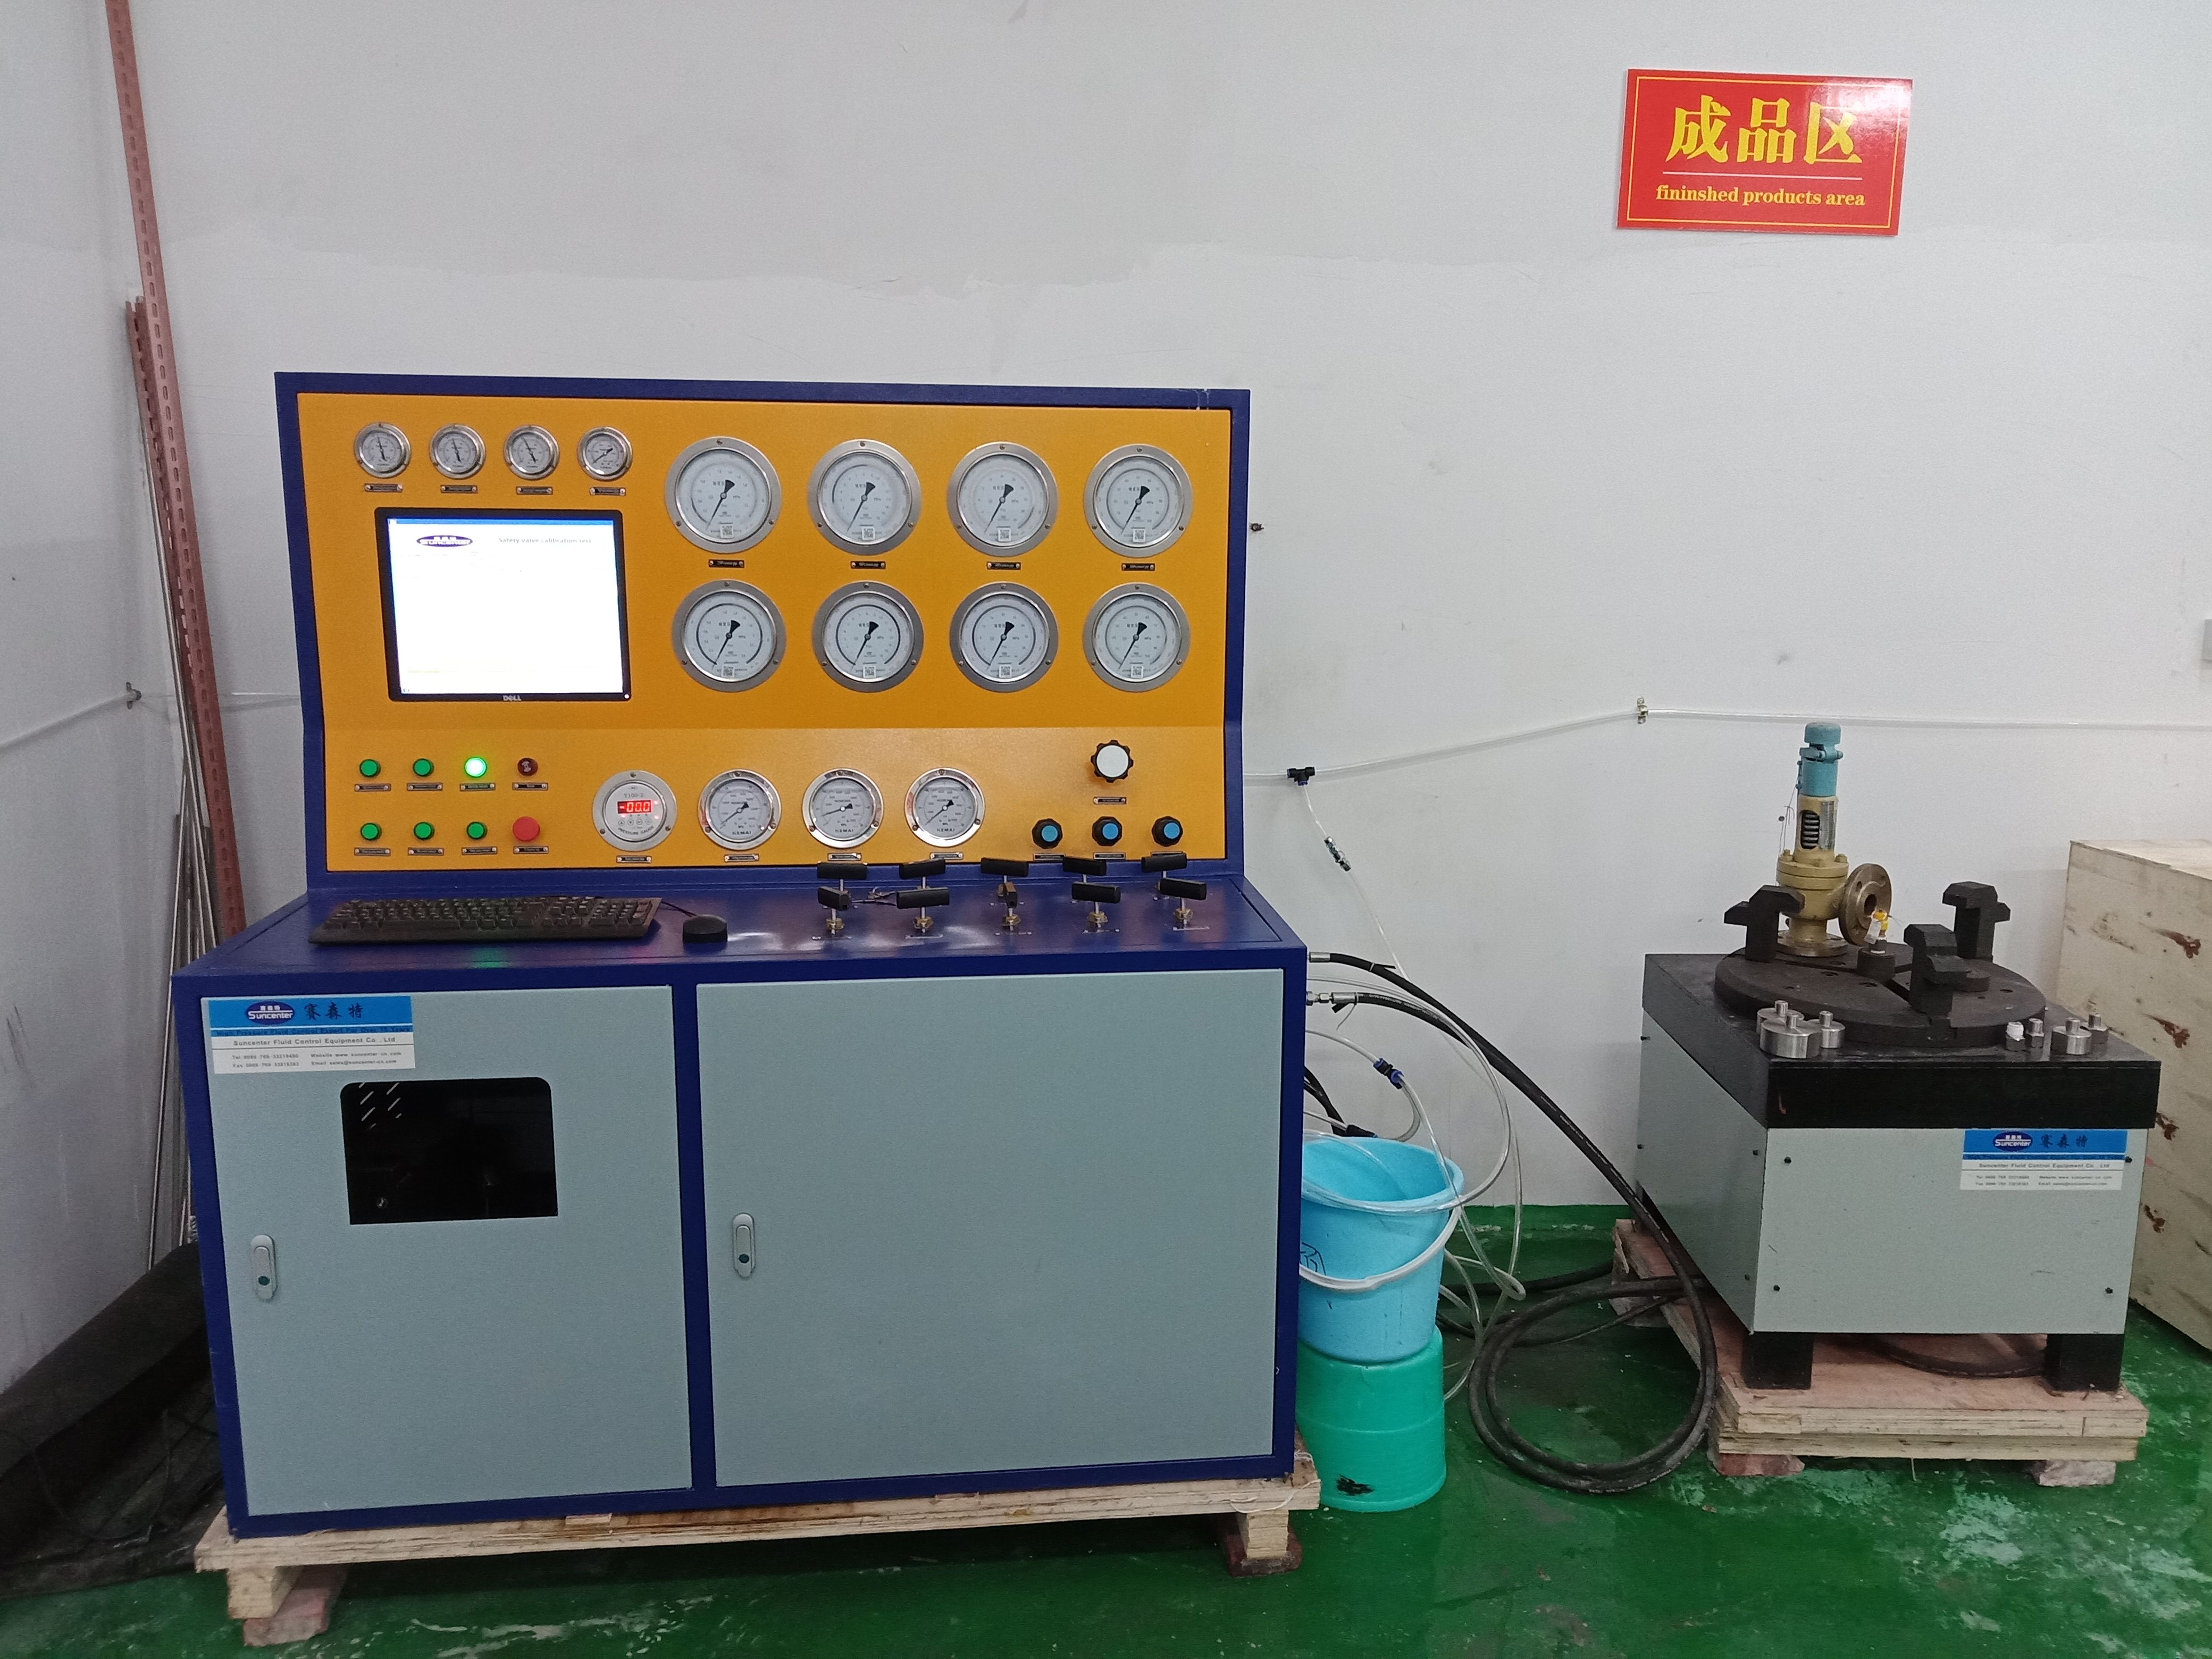 Computercontrolled safety valve hydraulic test bench in